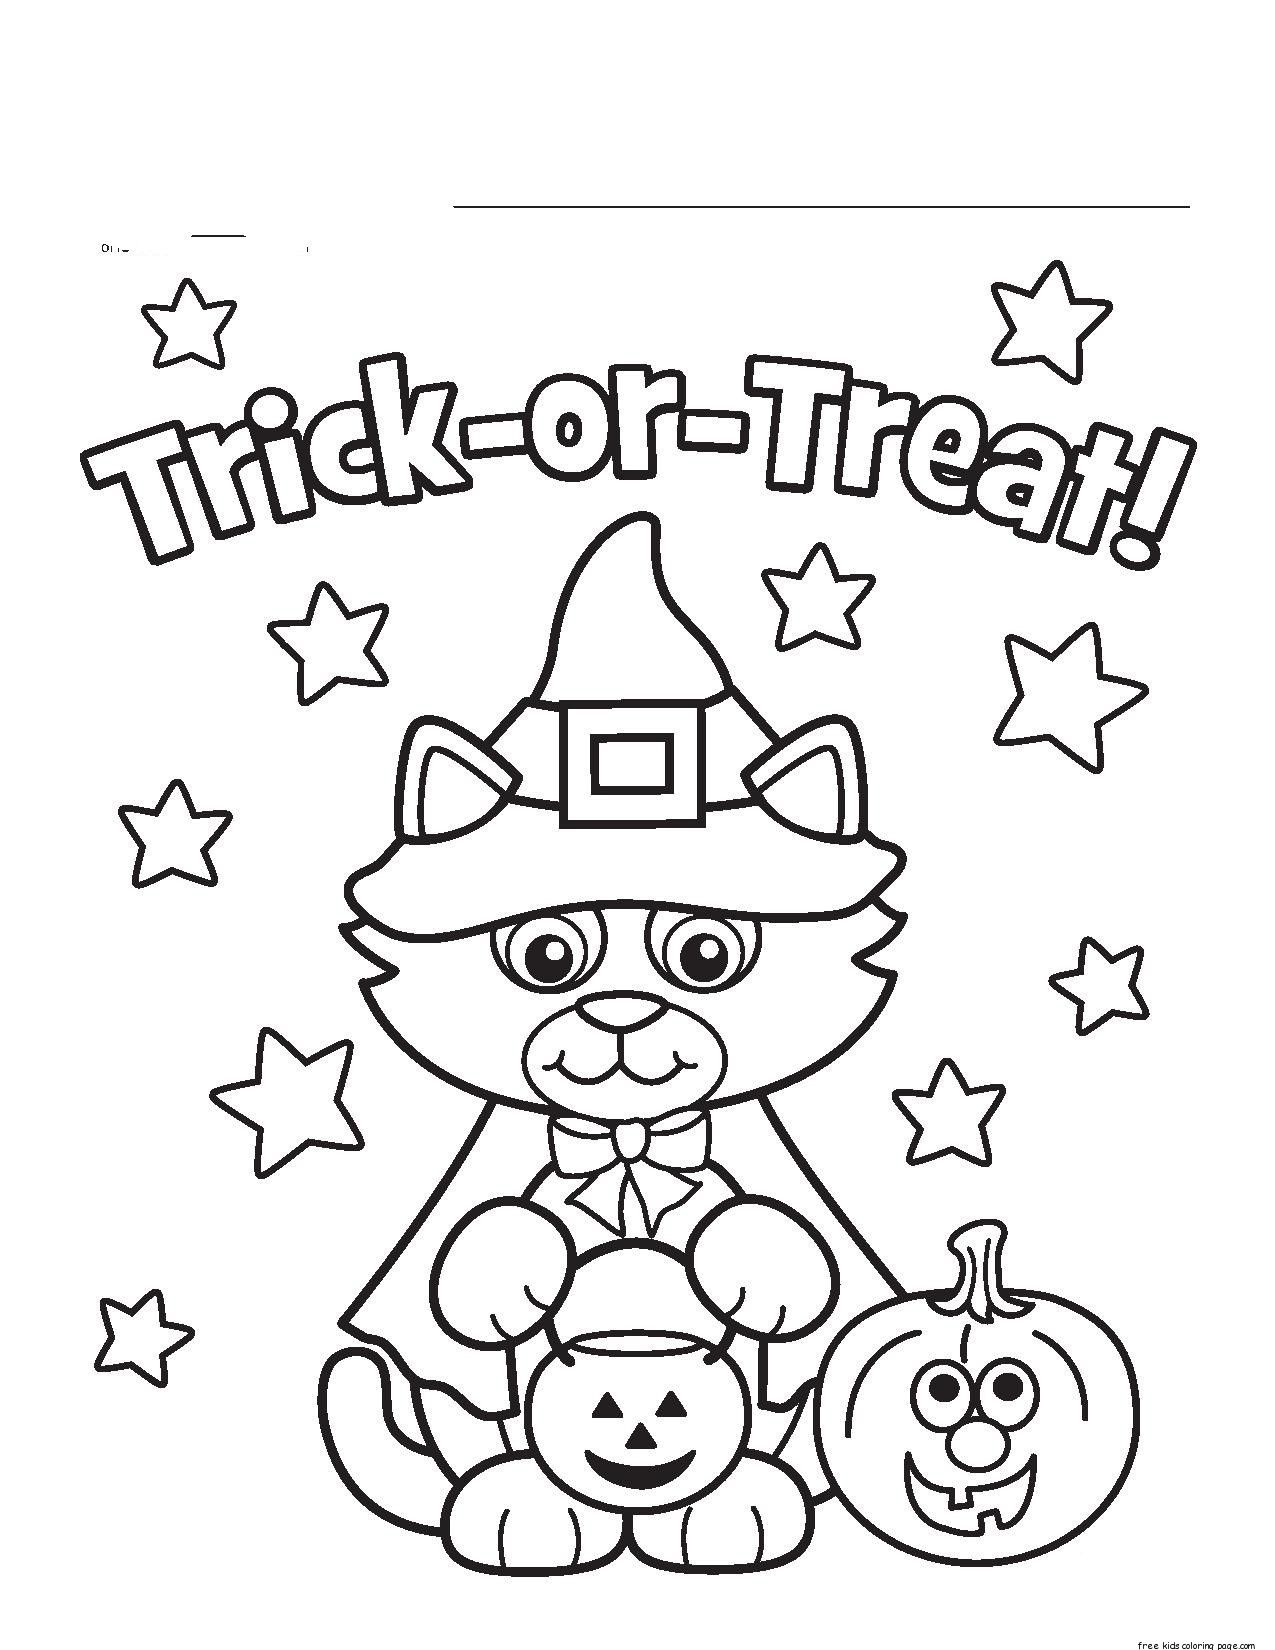 Free Printable Halloween Coloring Pages Kids, Halloween, The - Free Printable Halloween Coloring Pages